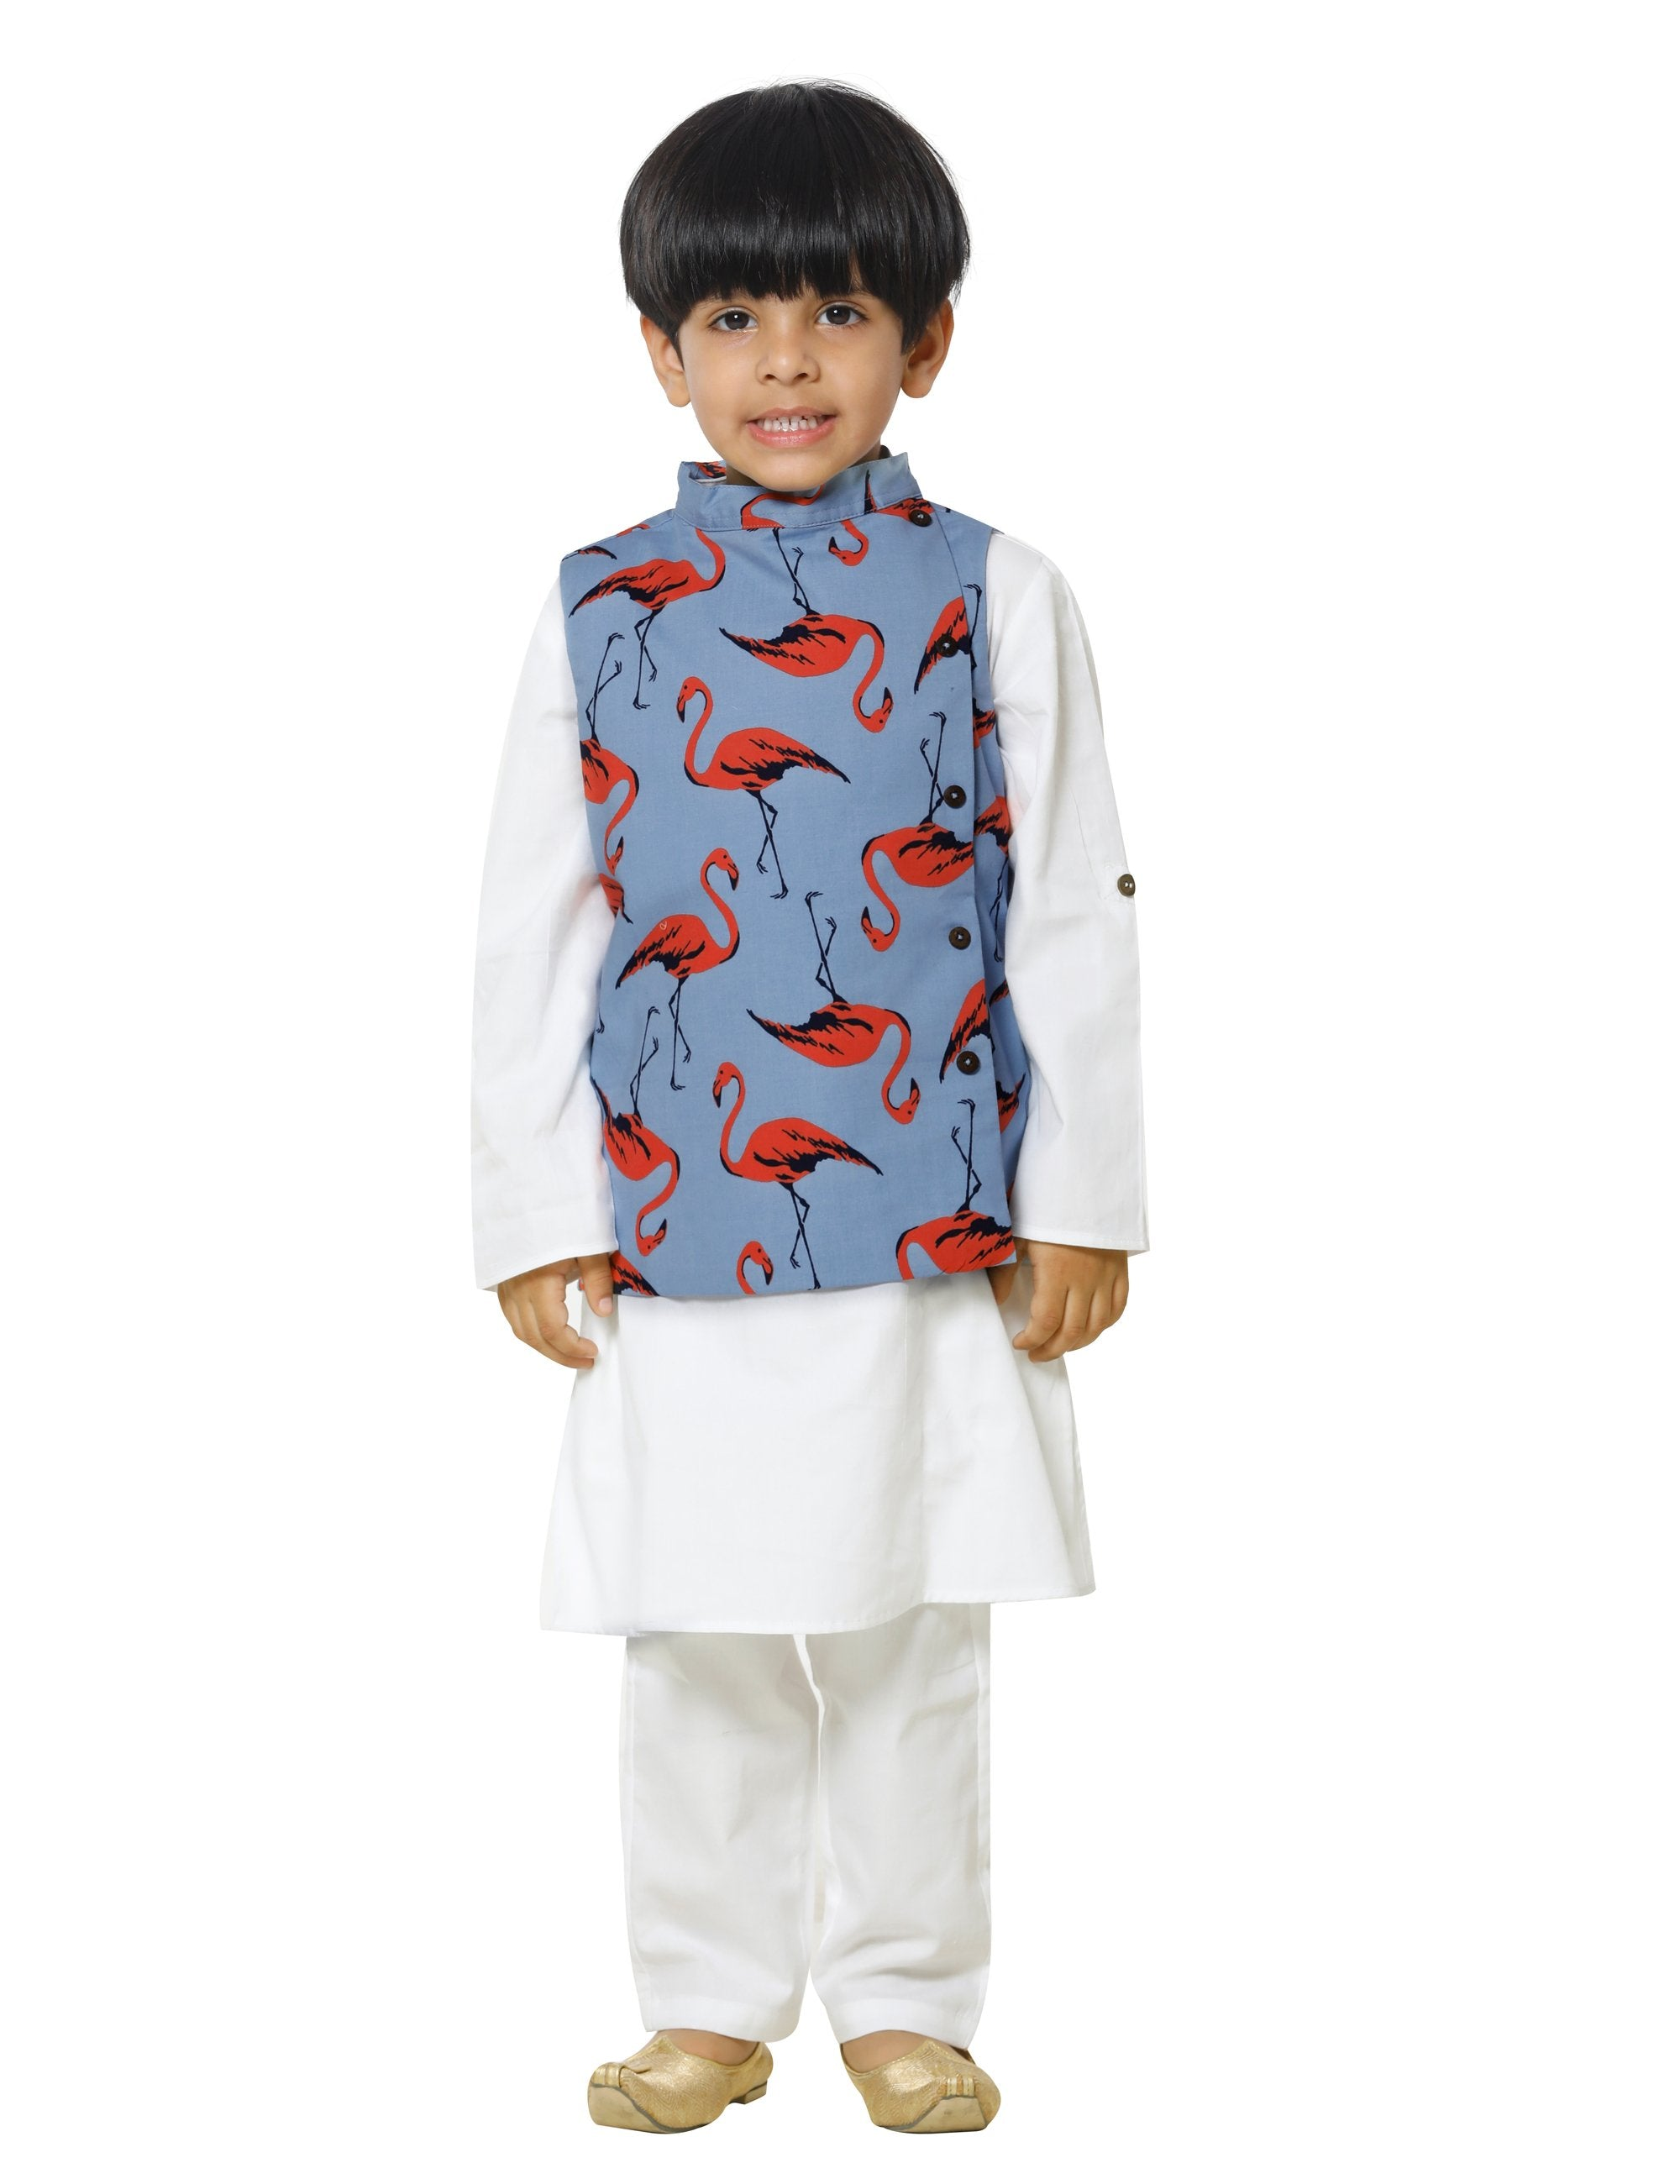 Flamingo Jacket with White Kurta Pyjama Set